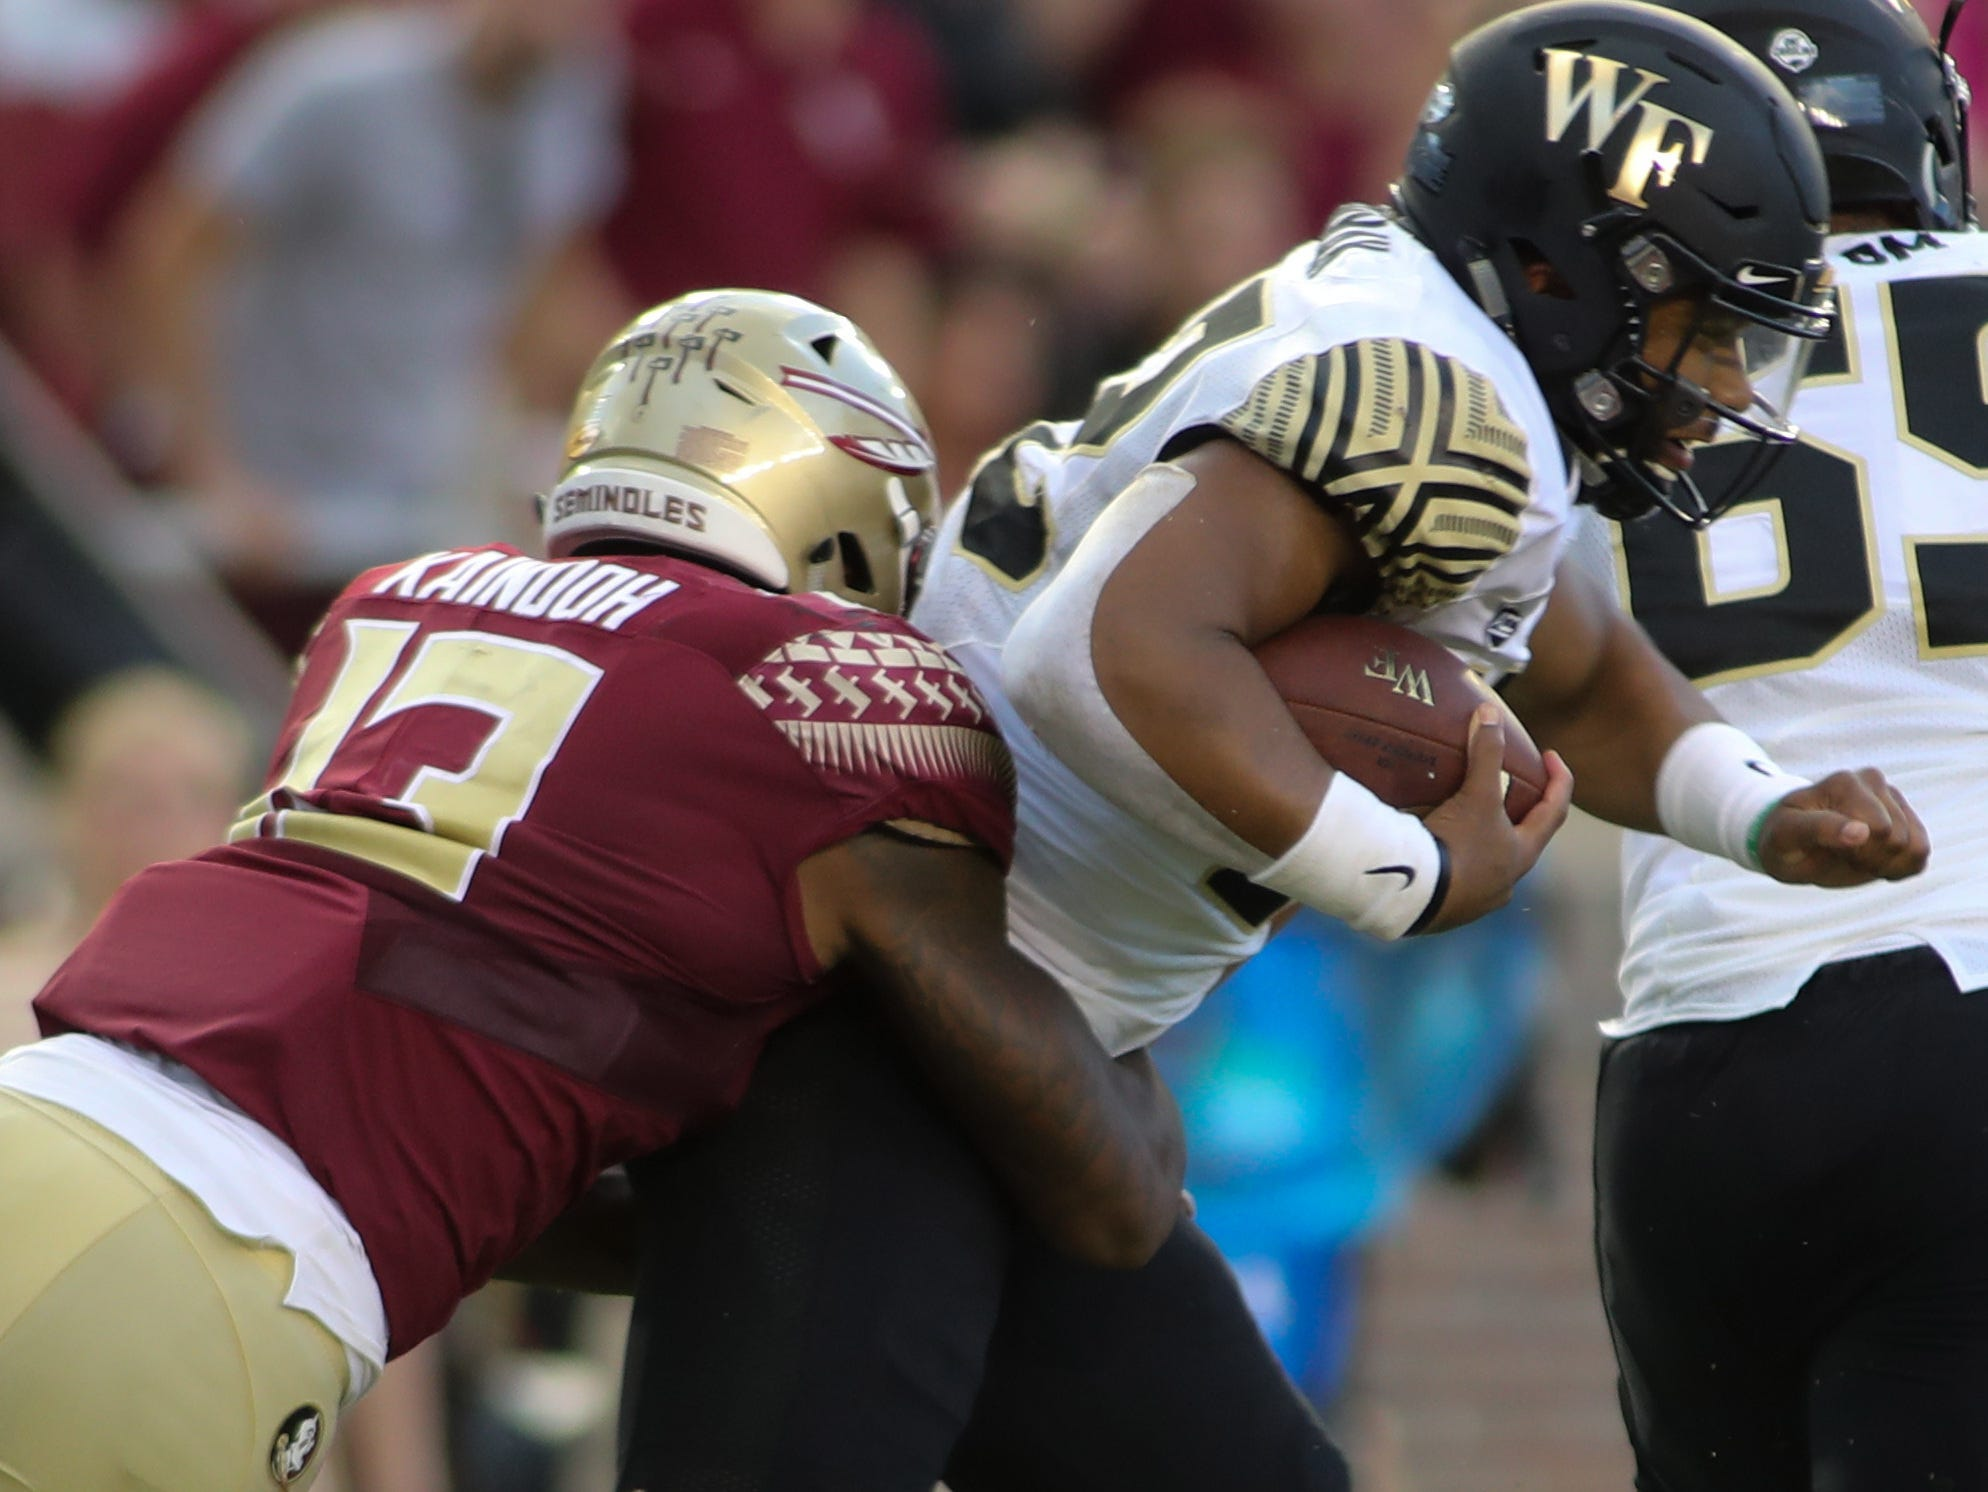 Florida State Seminoles defensive end Joshua Kaindoh (13) sacks Wake Forest Demon Deacons quarterback Tayvone Bowers (13) during FSU's homecoming game against Wake Forest at Doak S. Campbell Stadium Saturday, Oct. 20, 2018.